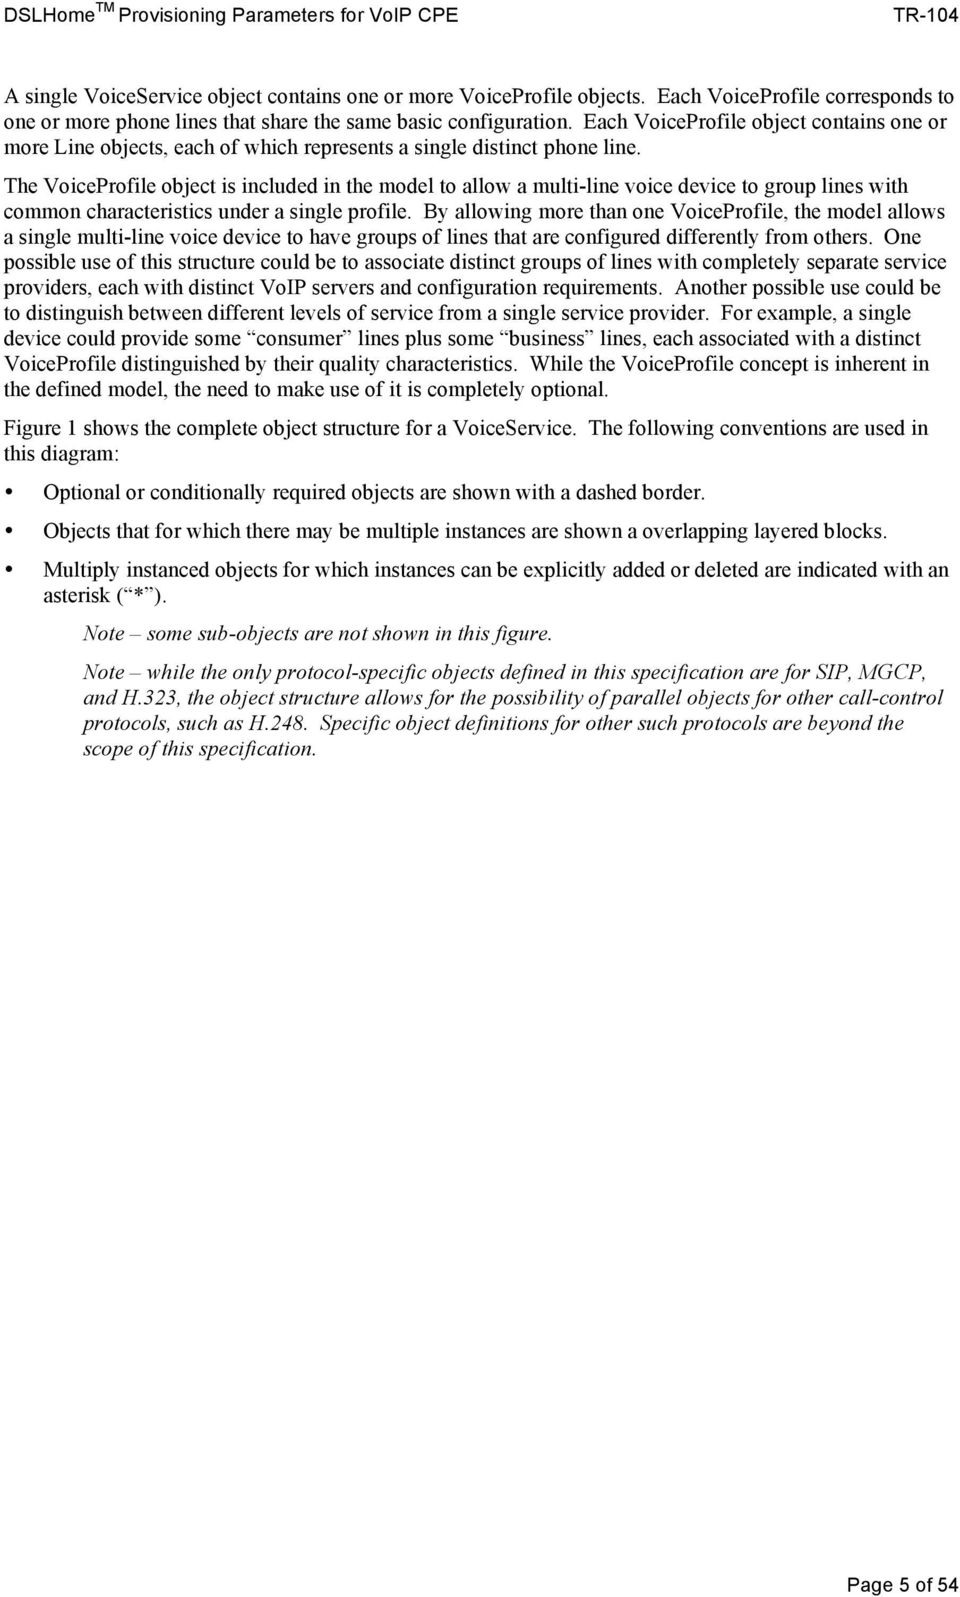 The VoiceProfile object is included in the model to allow a multiline voice device to group lines with common characteristics under a single profile.